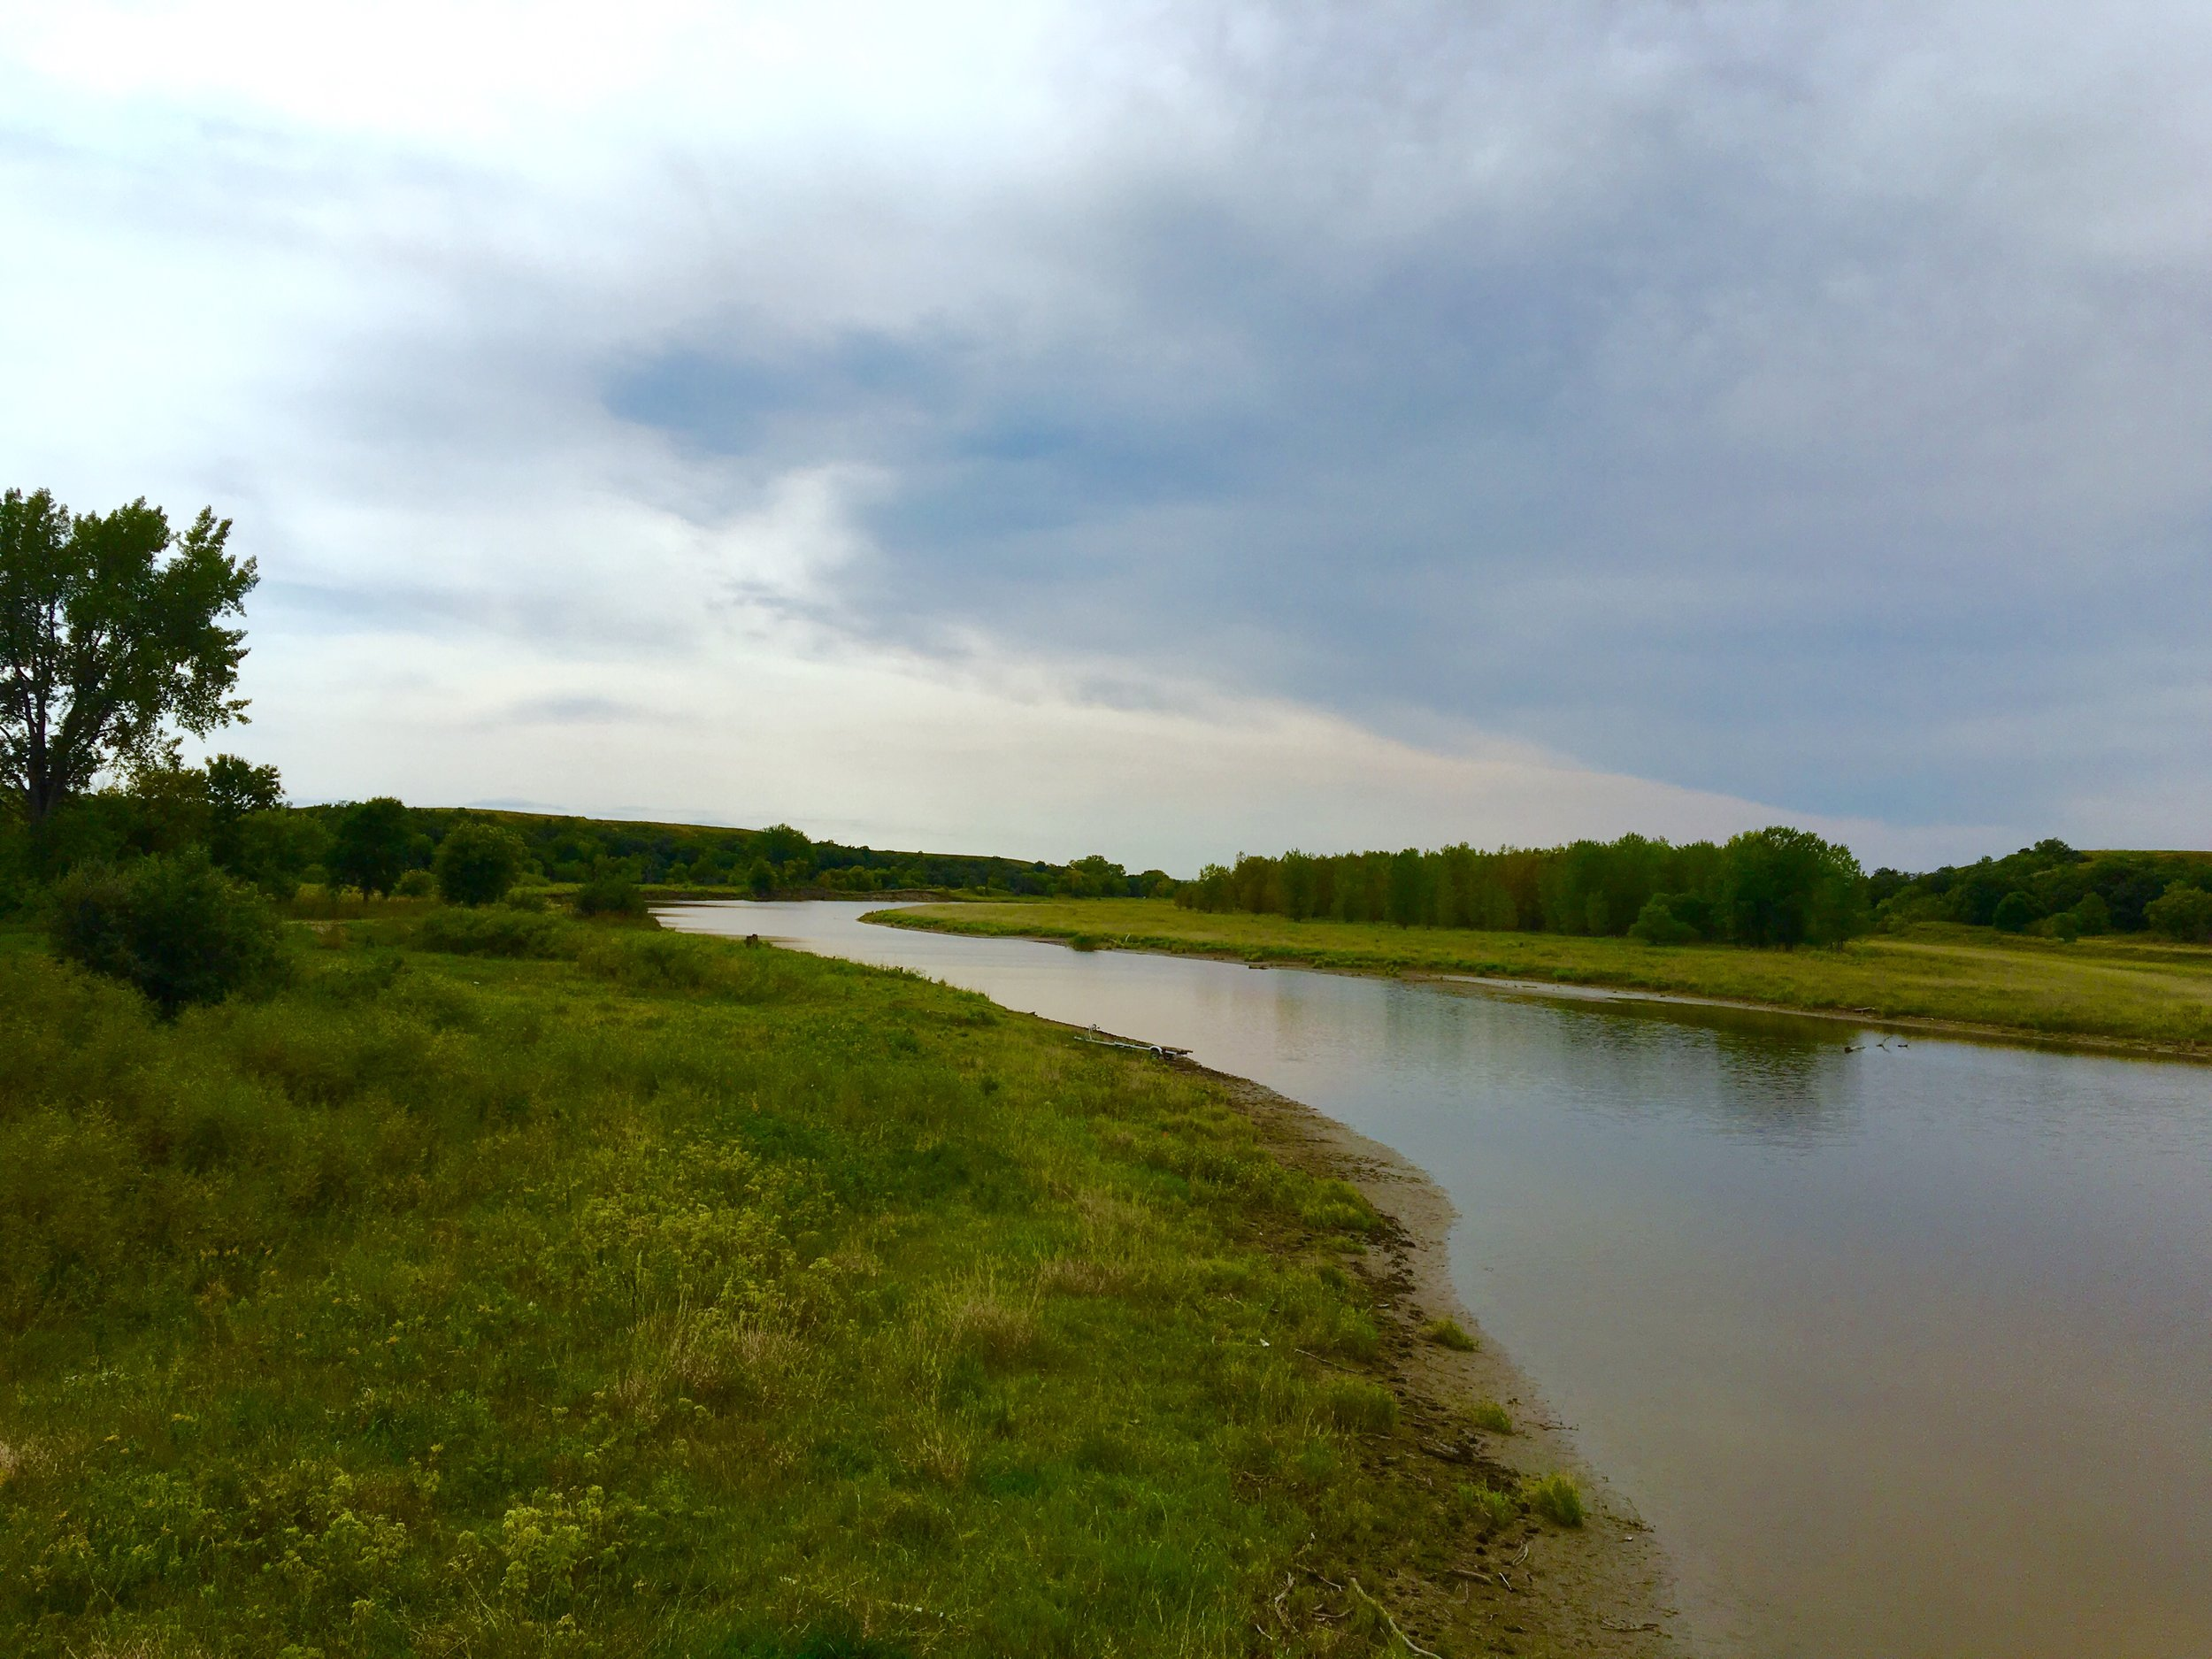 Cannonball River in Sioux Treaty territory, pictured by Gabe Galanda